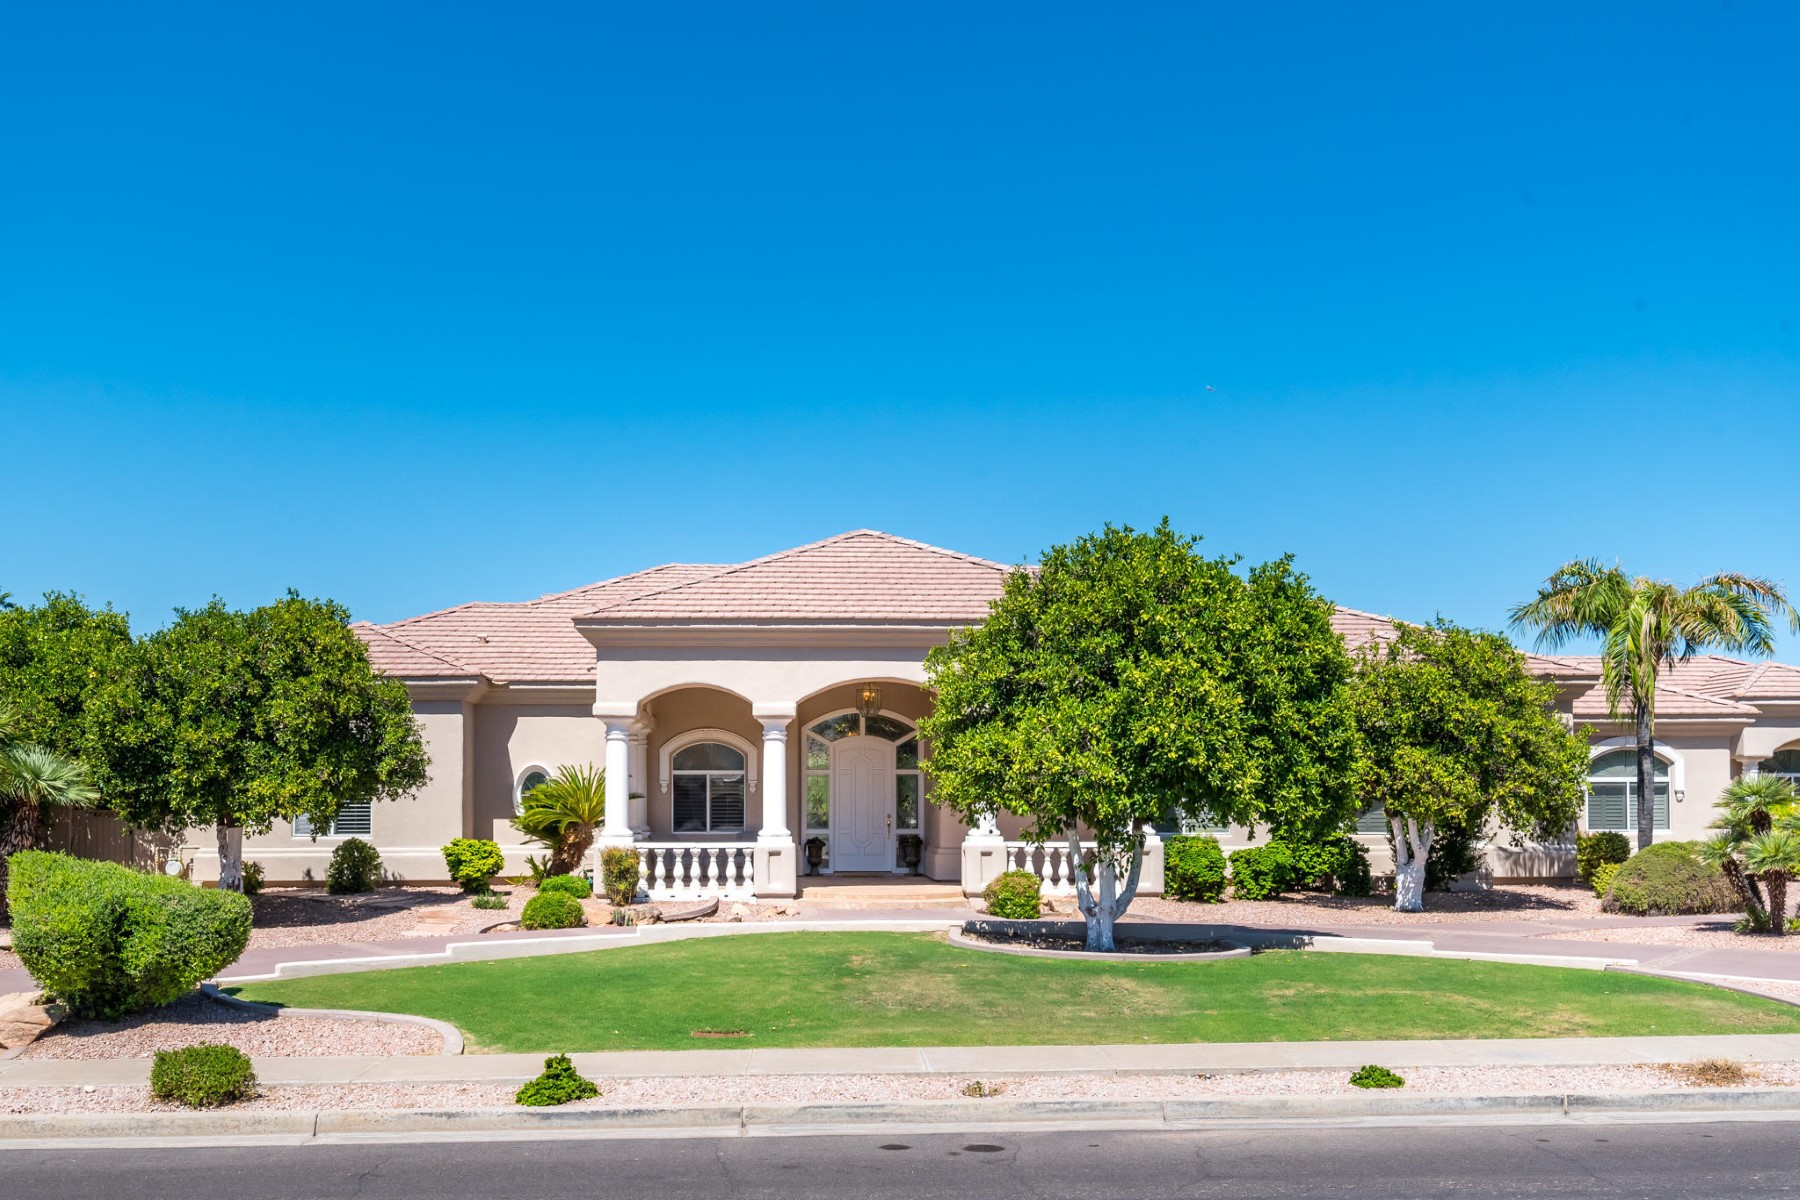 Single Family Homes for Active at Spyglass Estates 3942 E LELAND ST Mesa, Arizona 85215 United States